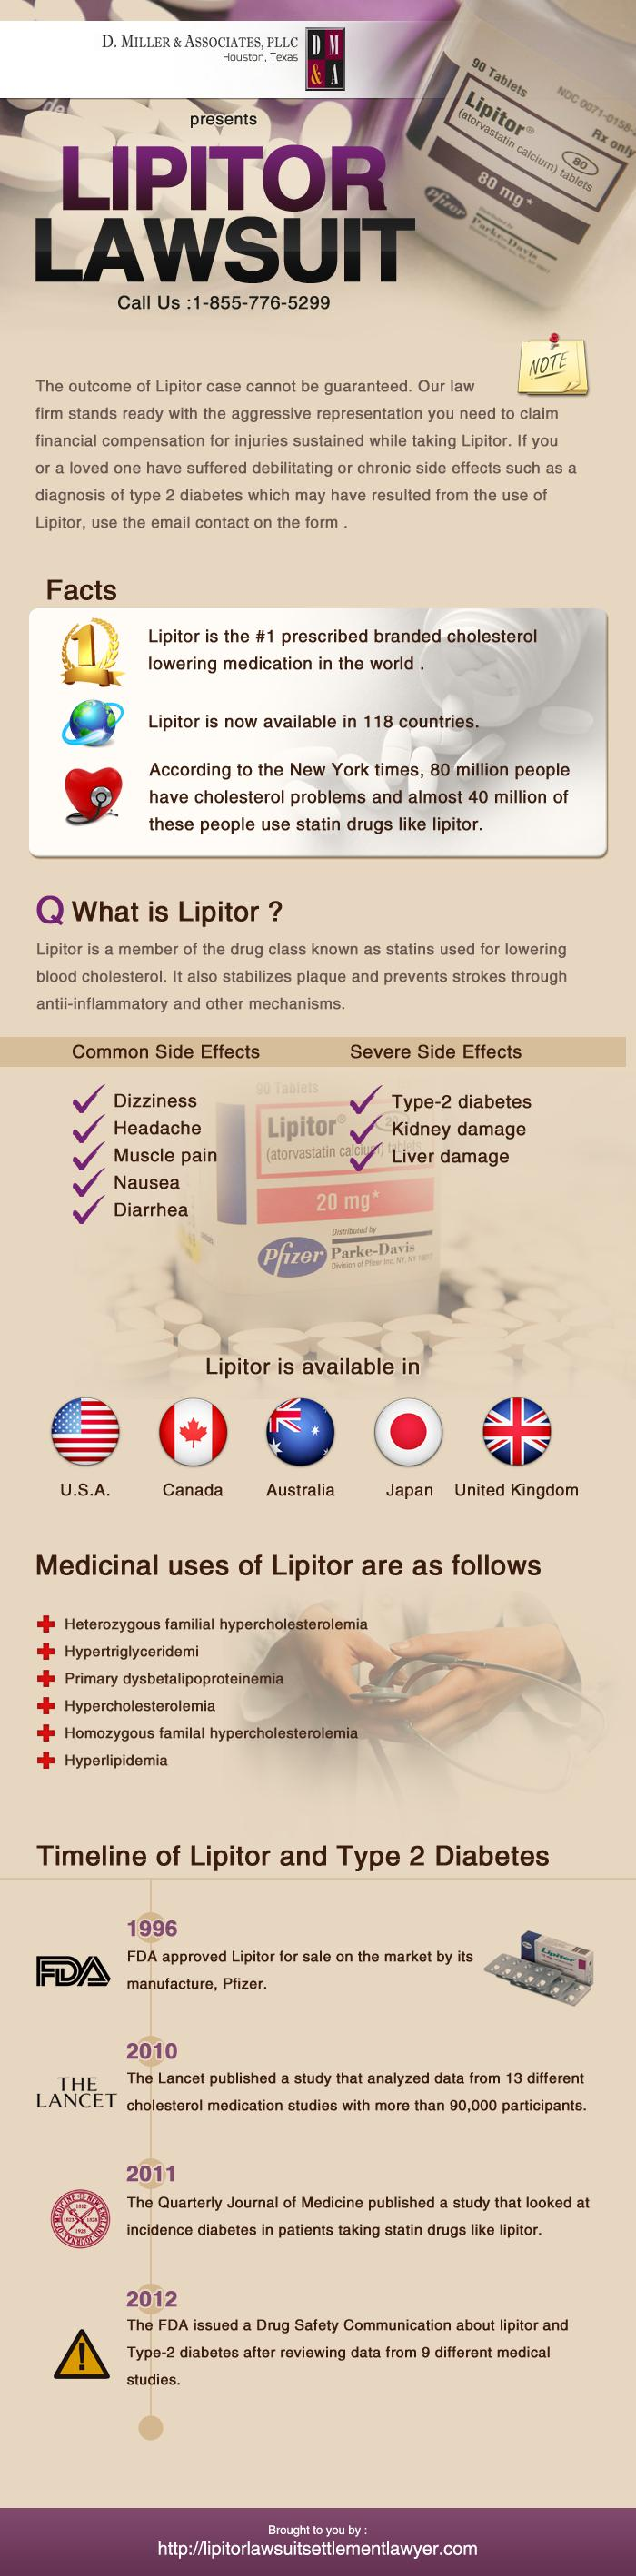 lipitor-lawsuit-settlement_525545789c210